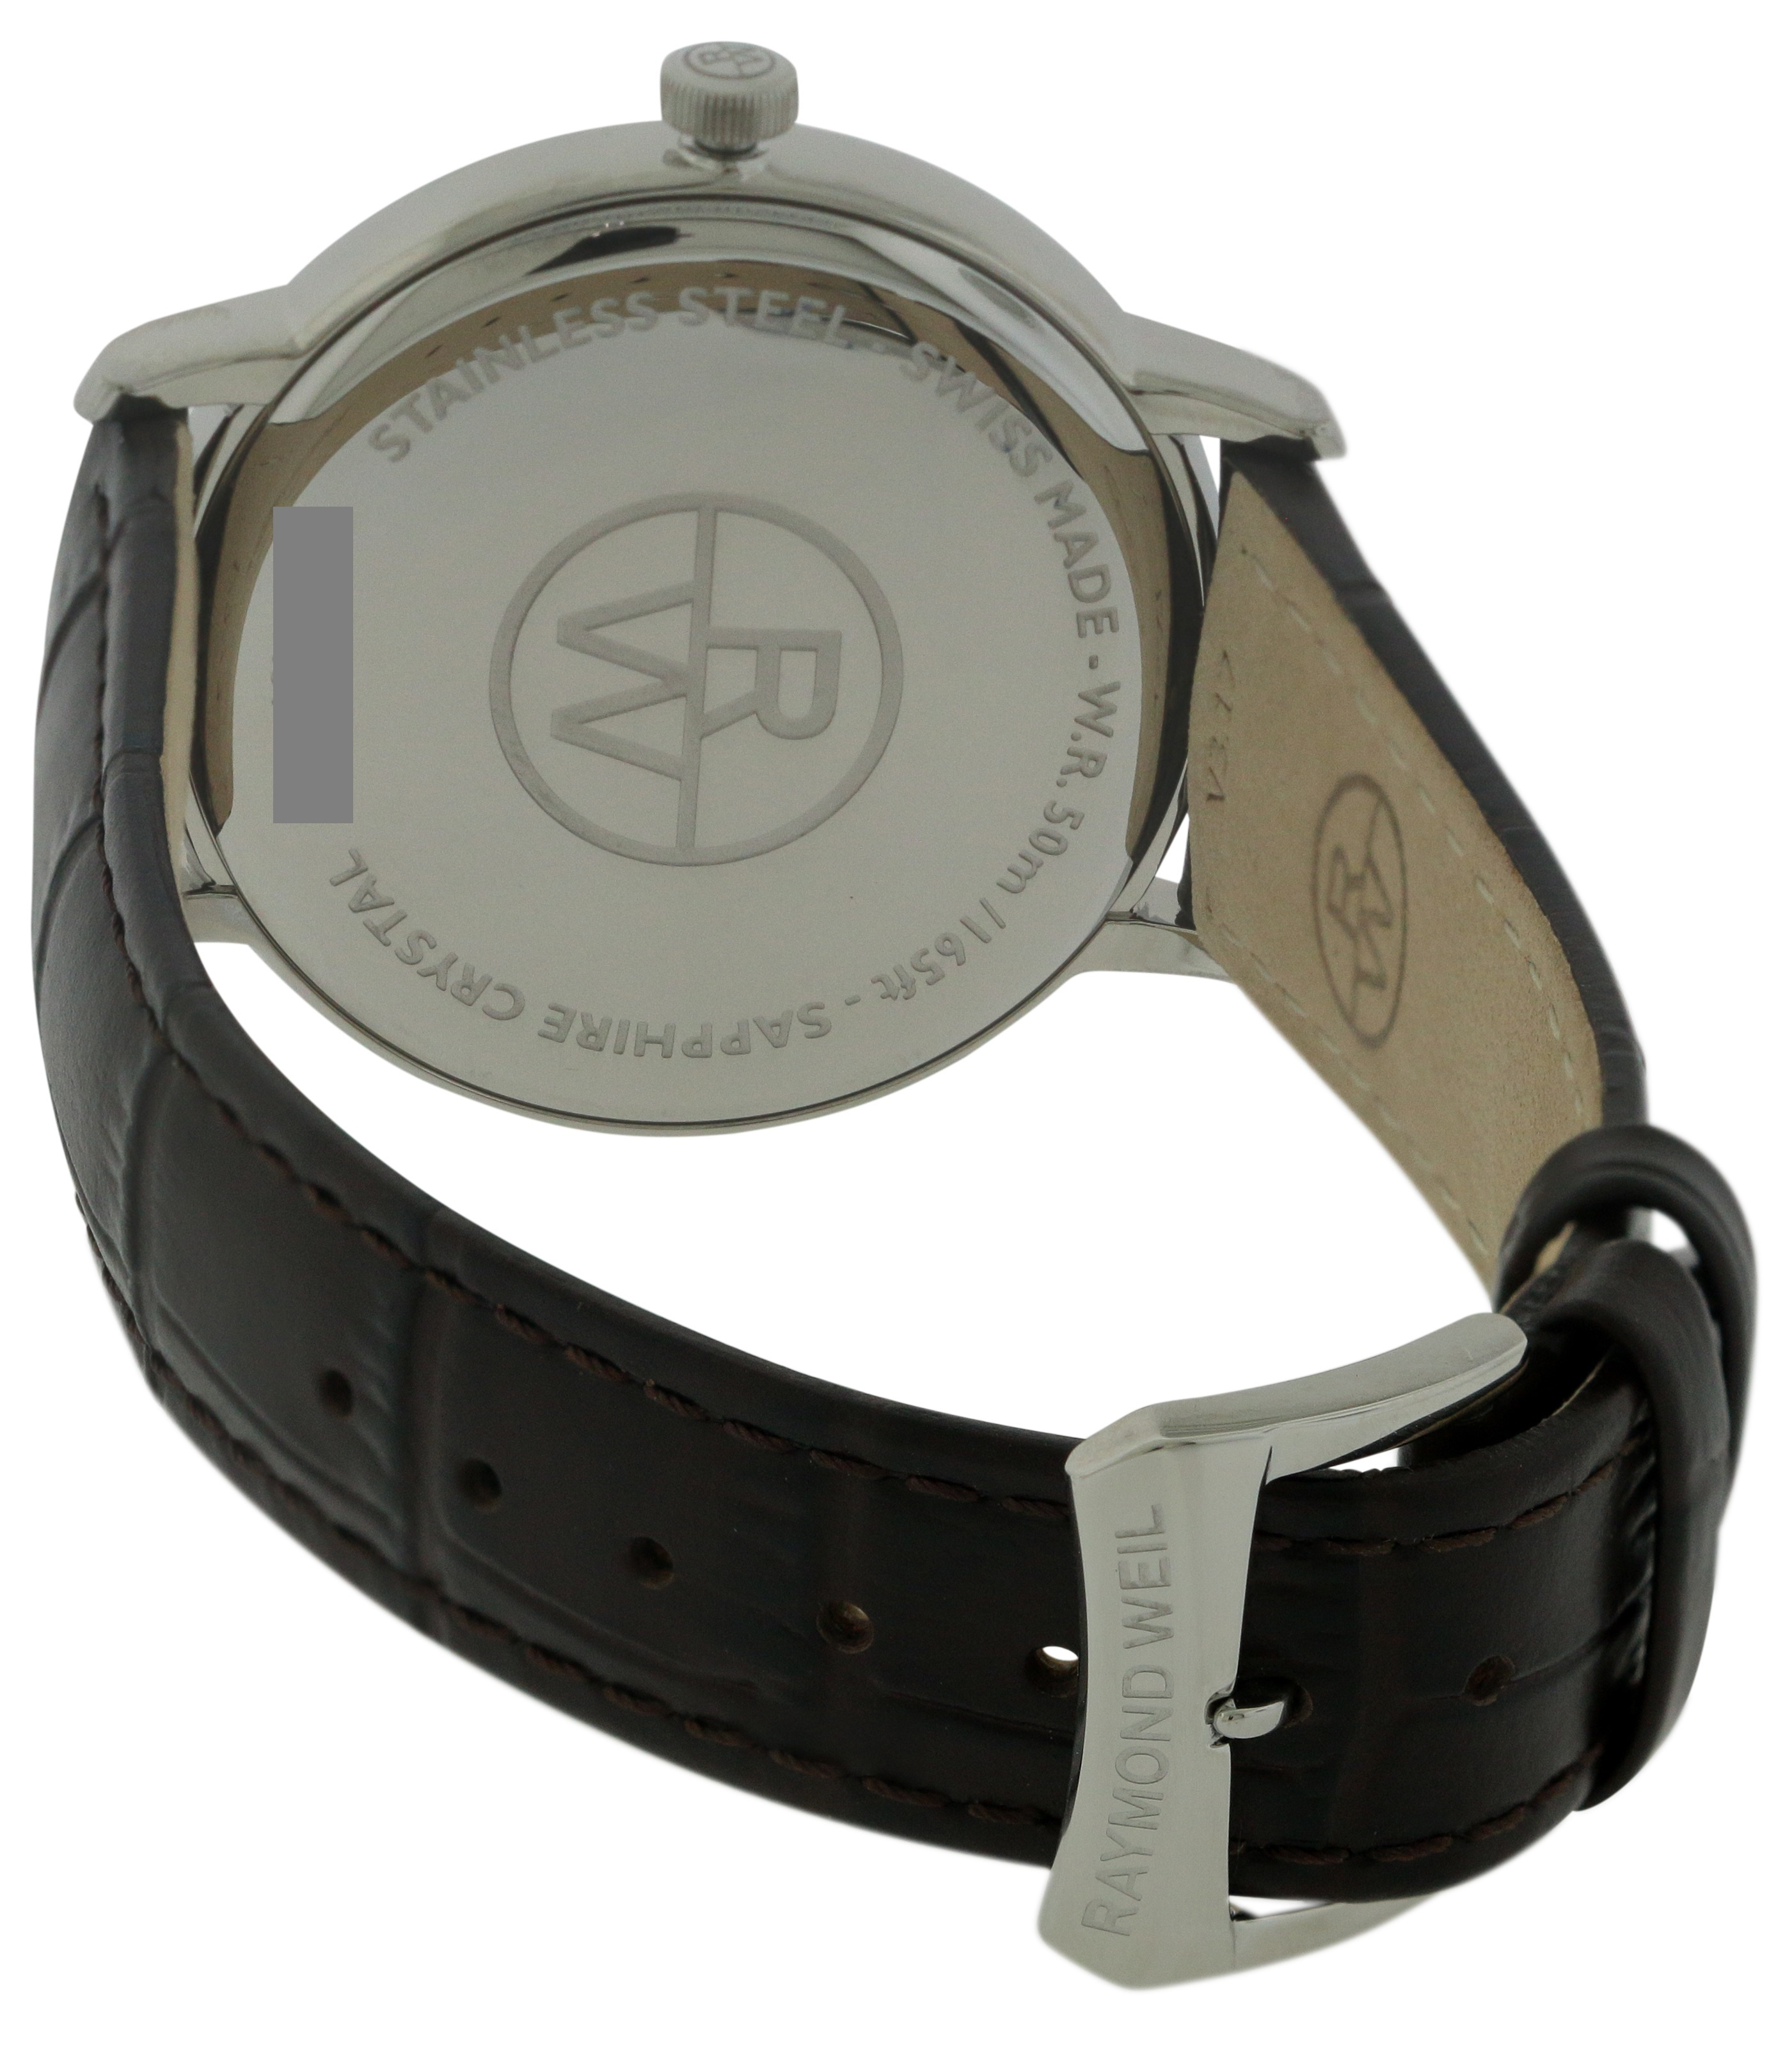 c36d5e5e2 Raymond Weil Toccata Leather Mens Watch 5488-STC-40001, Solar Time Inc